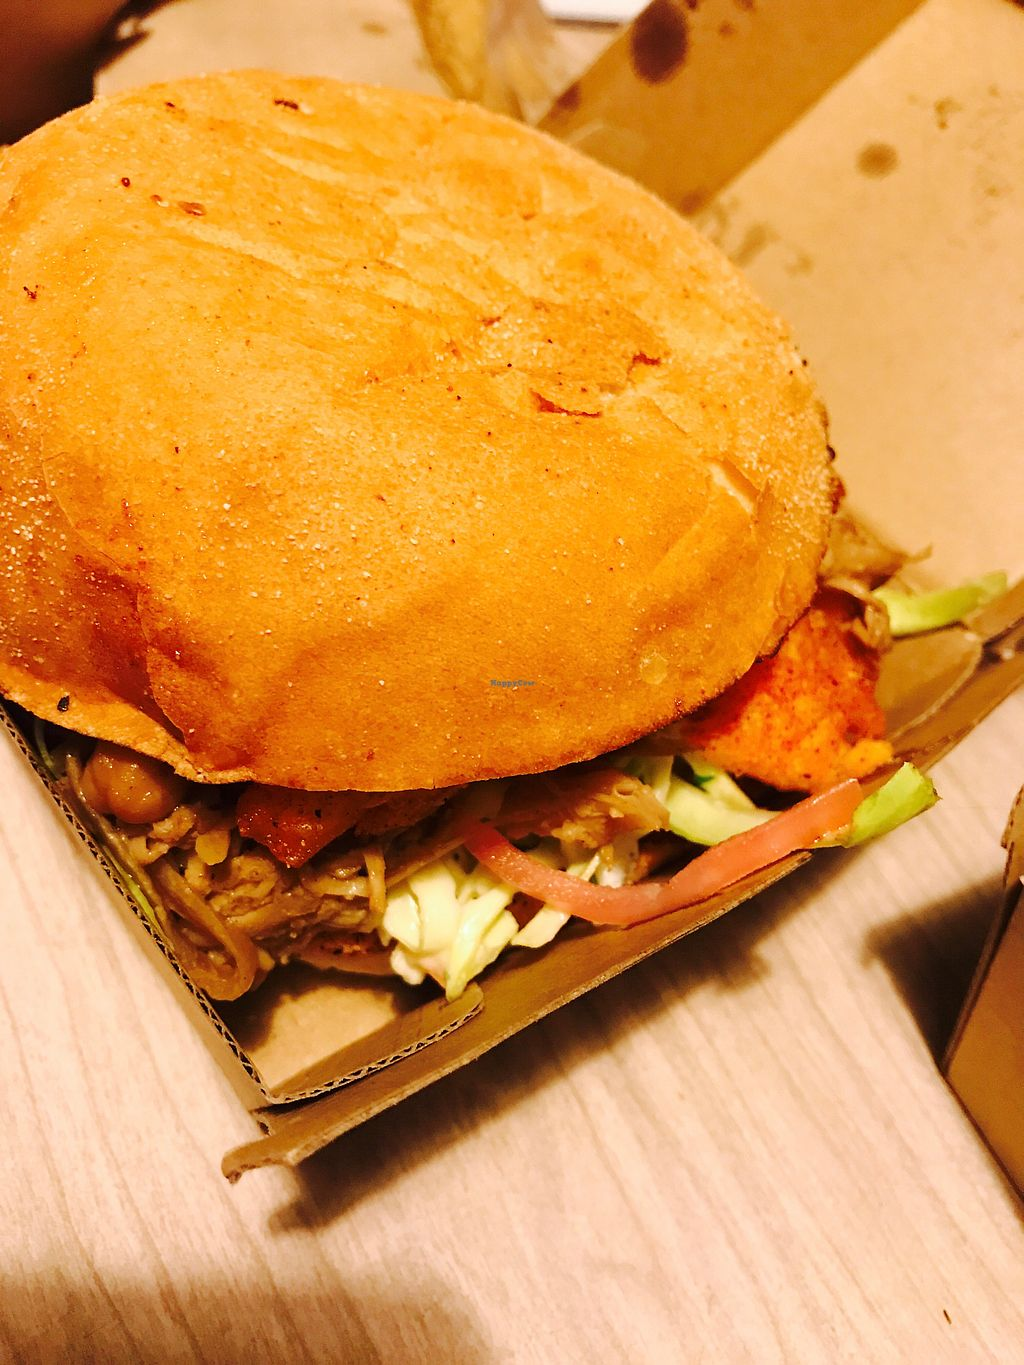 """Photo of Bake and Burger  by <a href=""""/members/profile/NirvanaRoseWilliams"""">NirvanaRoseWilliams</a> <br/>Satay pulled jackfruit burger  <br/> August 5, 2017  - <a href='/contact/abuse/image/93741/289108'>Report</a>"""